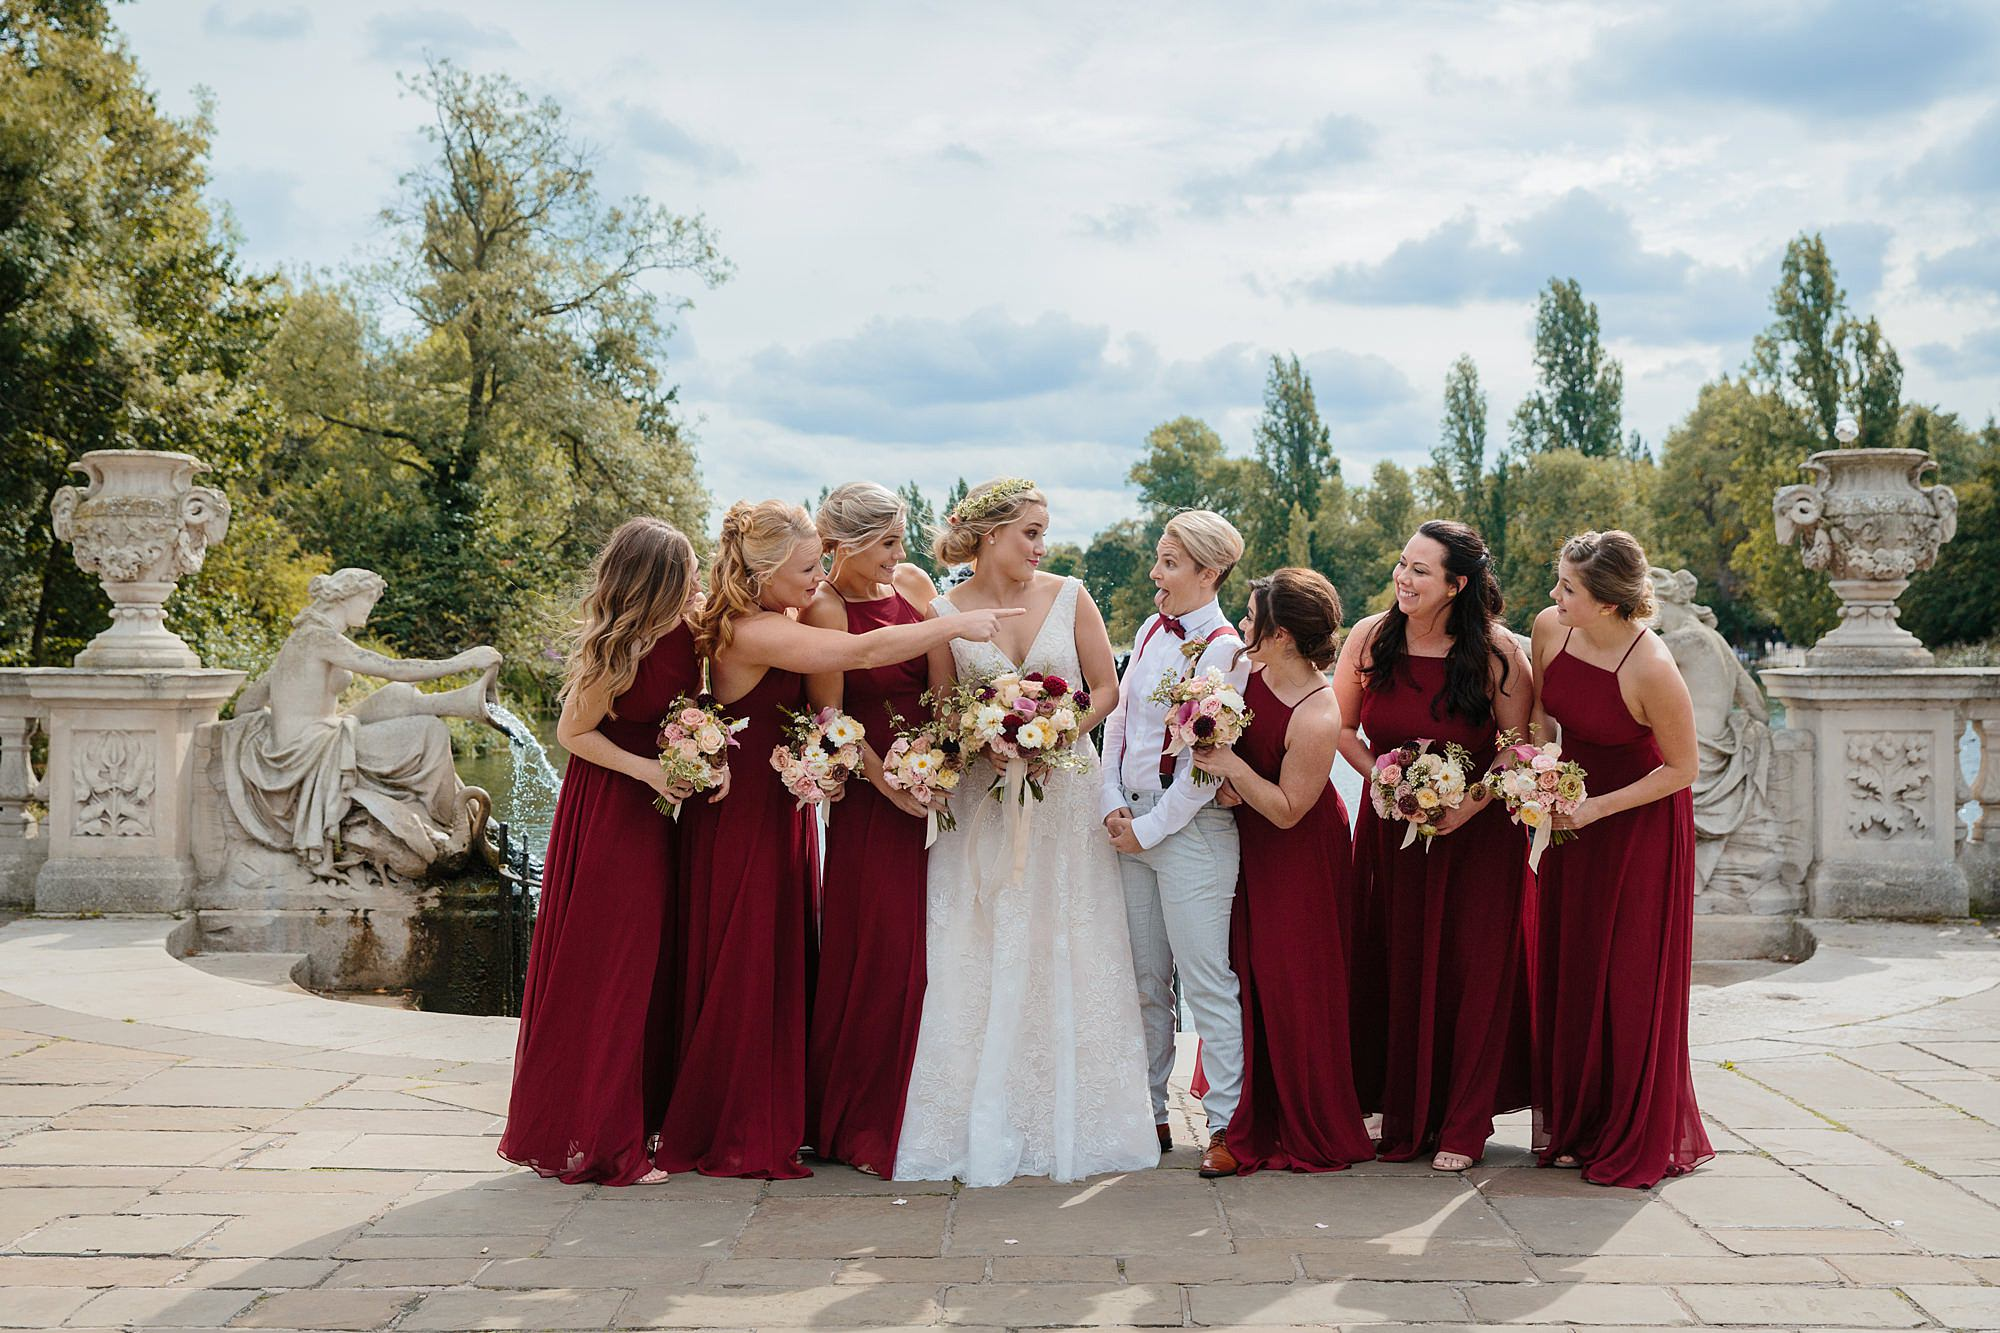 bride and bridesmaids laugh together at italian gardens